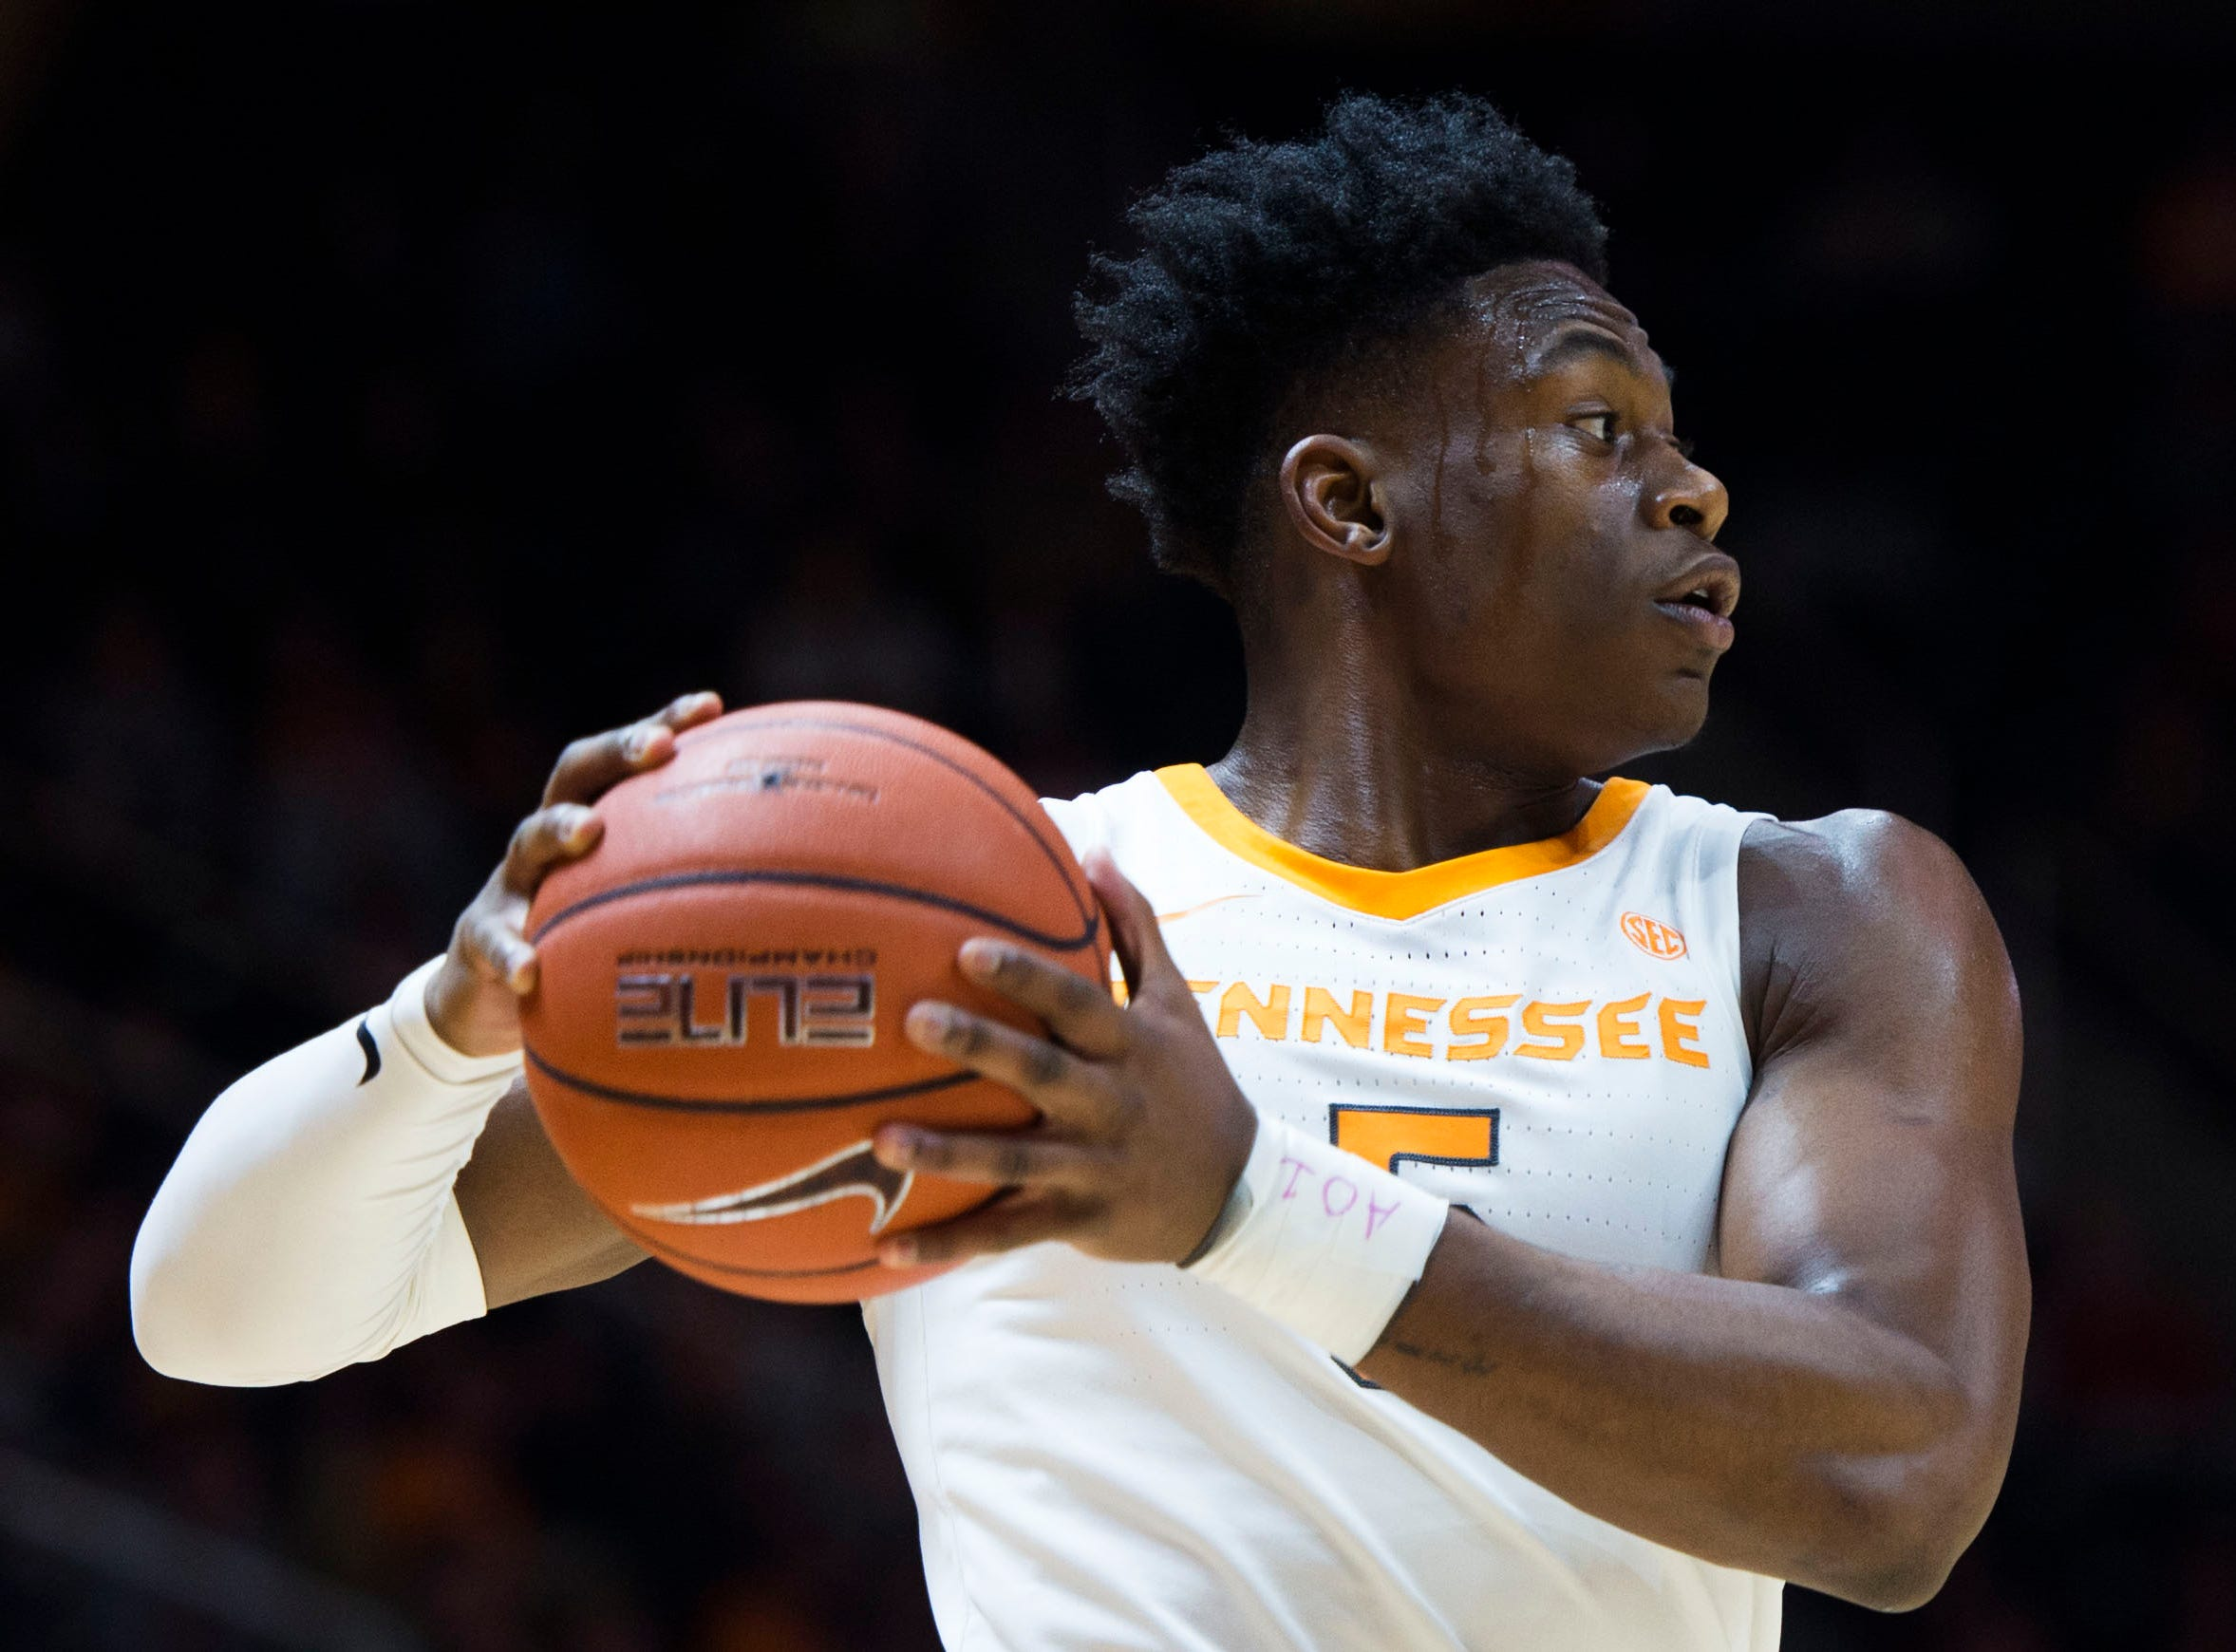 Tennessee's Admiral Schofield (5) looks to pass during the first half of a NCAA men's basketball game between Tennessee and Eastern Kentucky University at Thompson-Boling Arena Wednesday, Nov. 28, 2018.